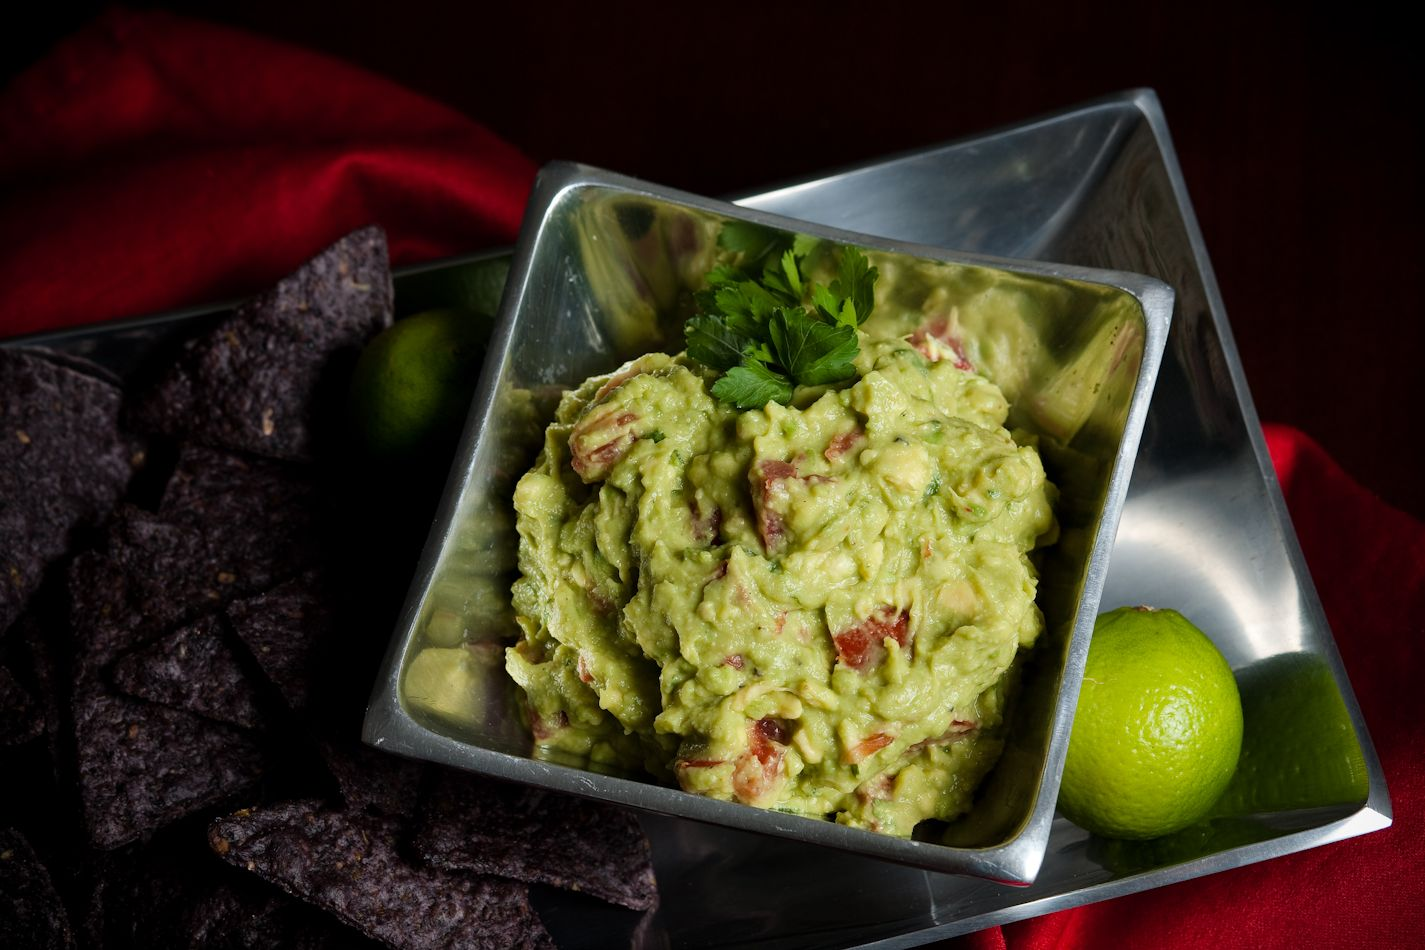 Can You Substitute Lime For Lemon In Guacamole Authentic Guacamole Starters Recipes Appetizer Recipes Delicious Vegan Recipes